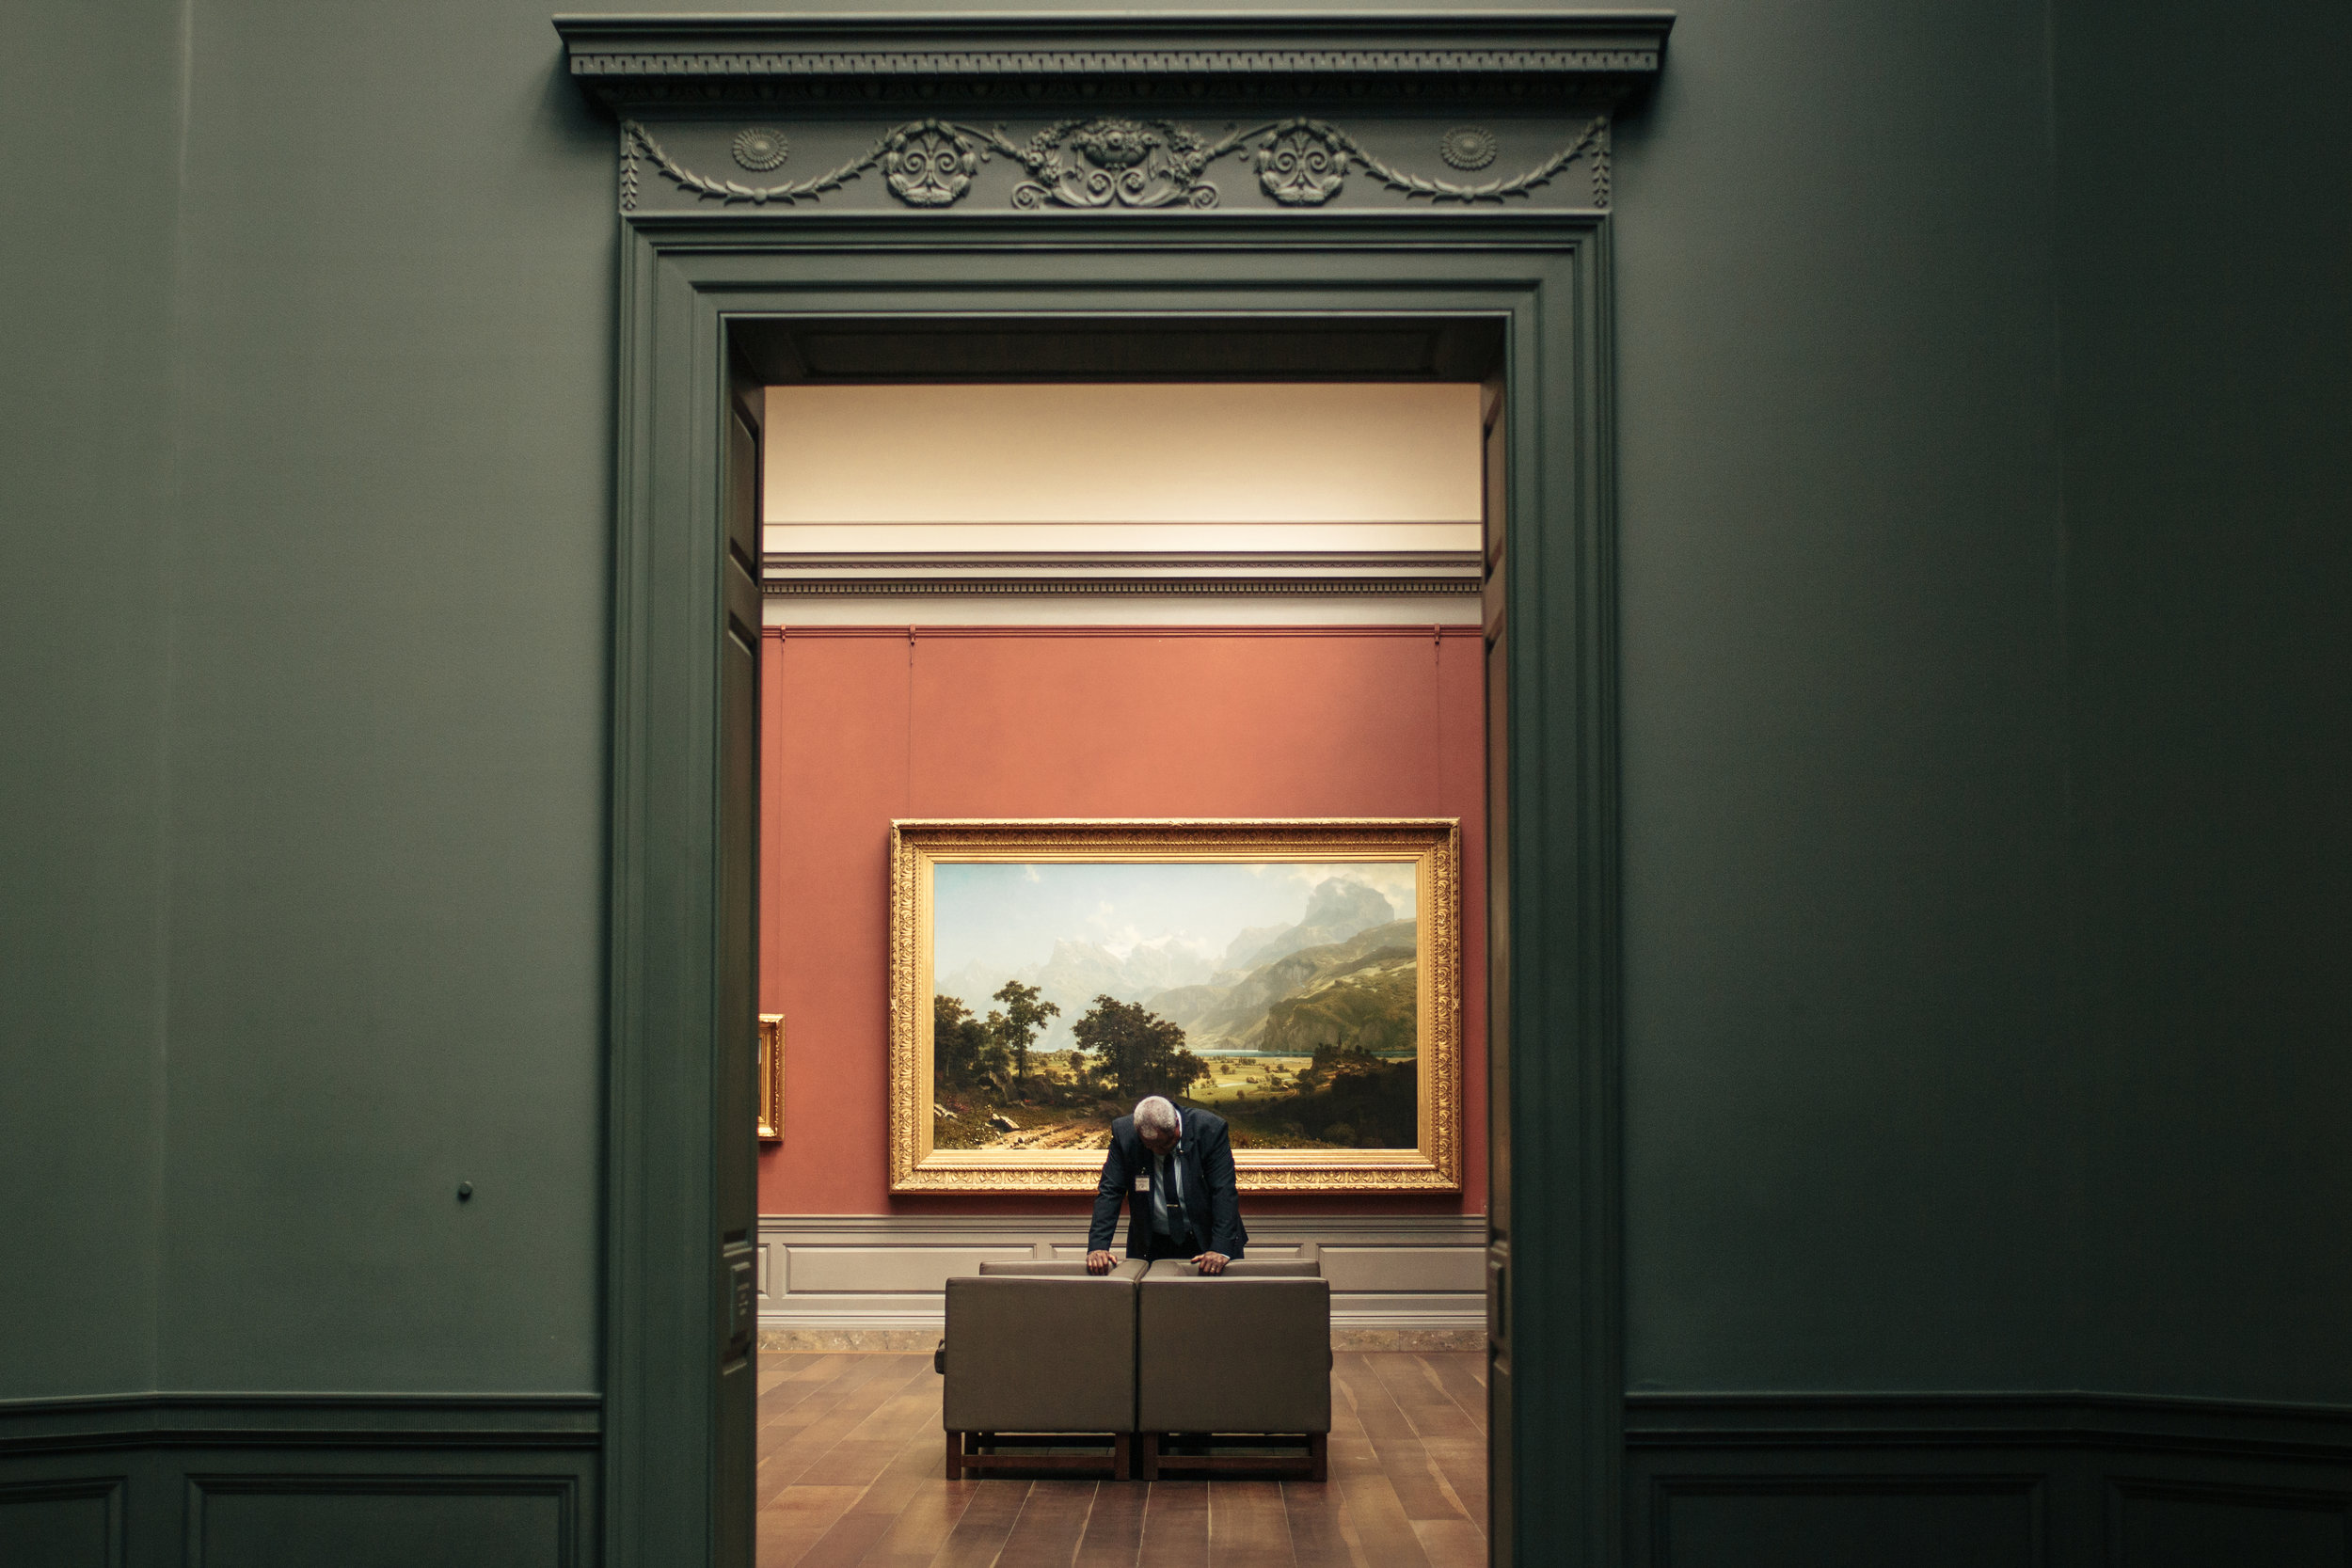 Forever intrigued by strangers in museums. Also: the National Gallery is a gift.